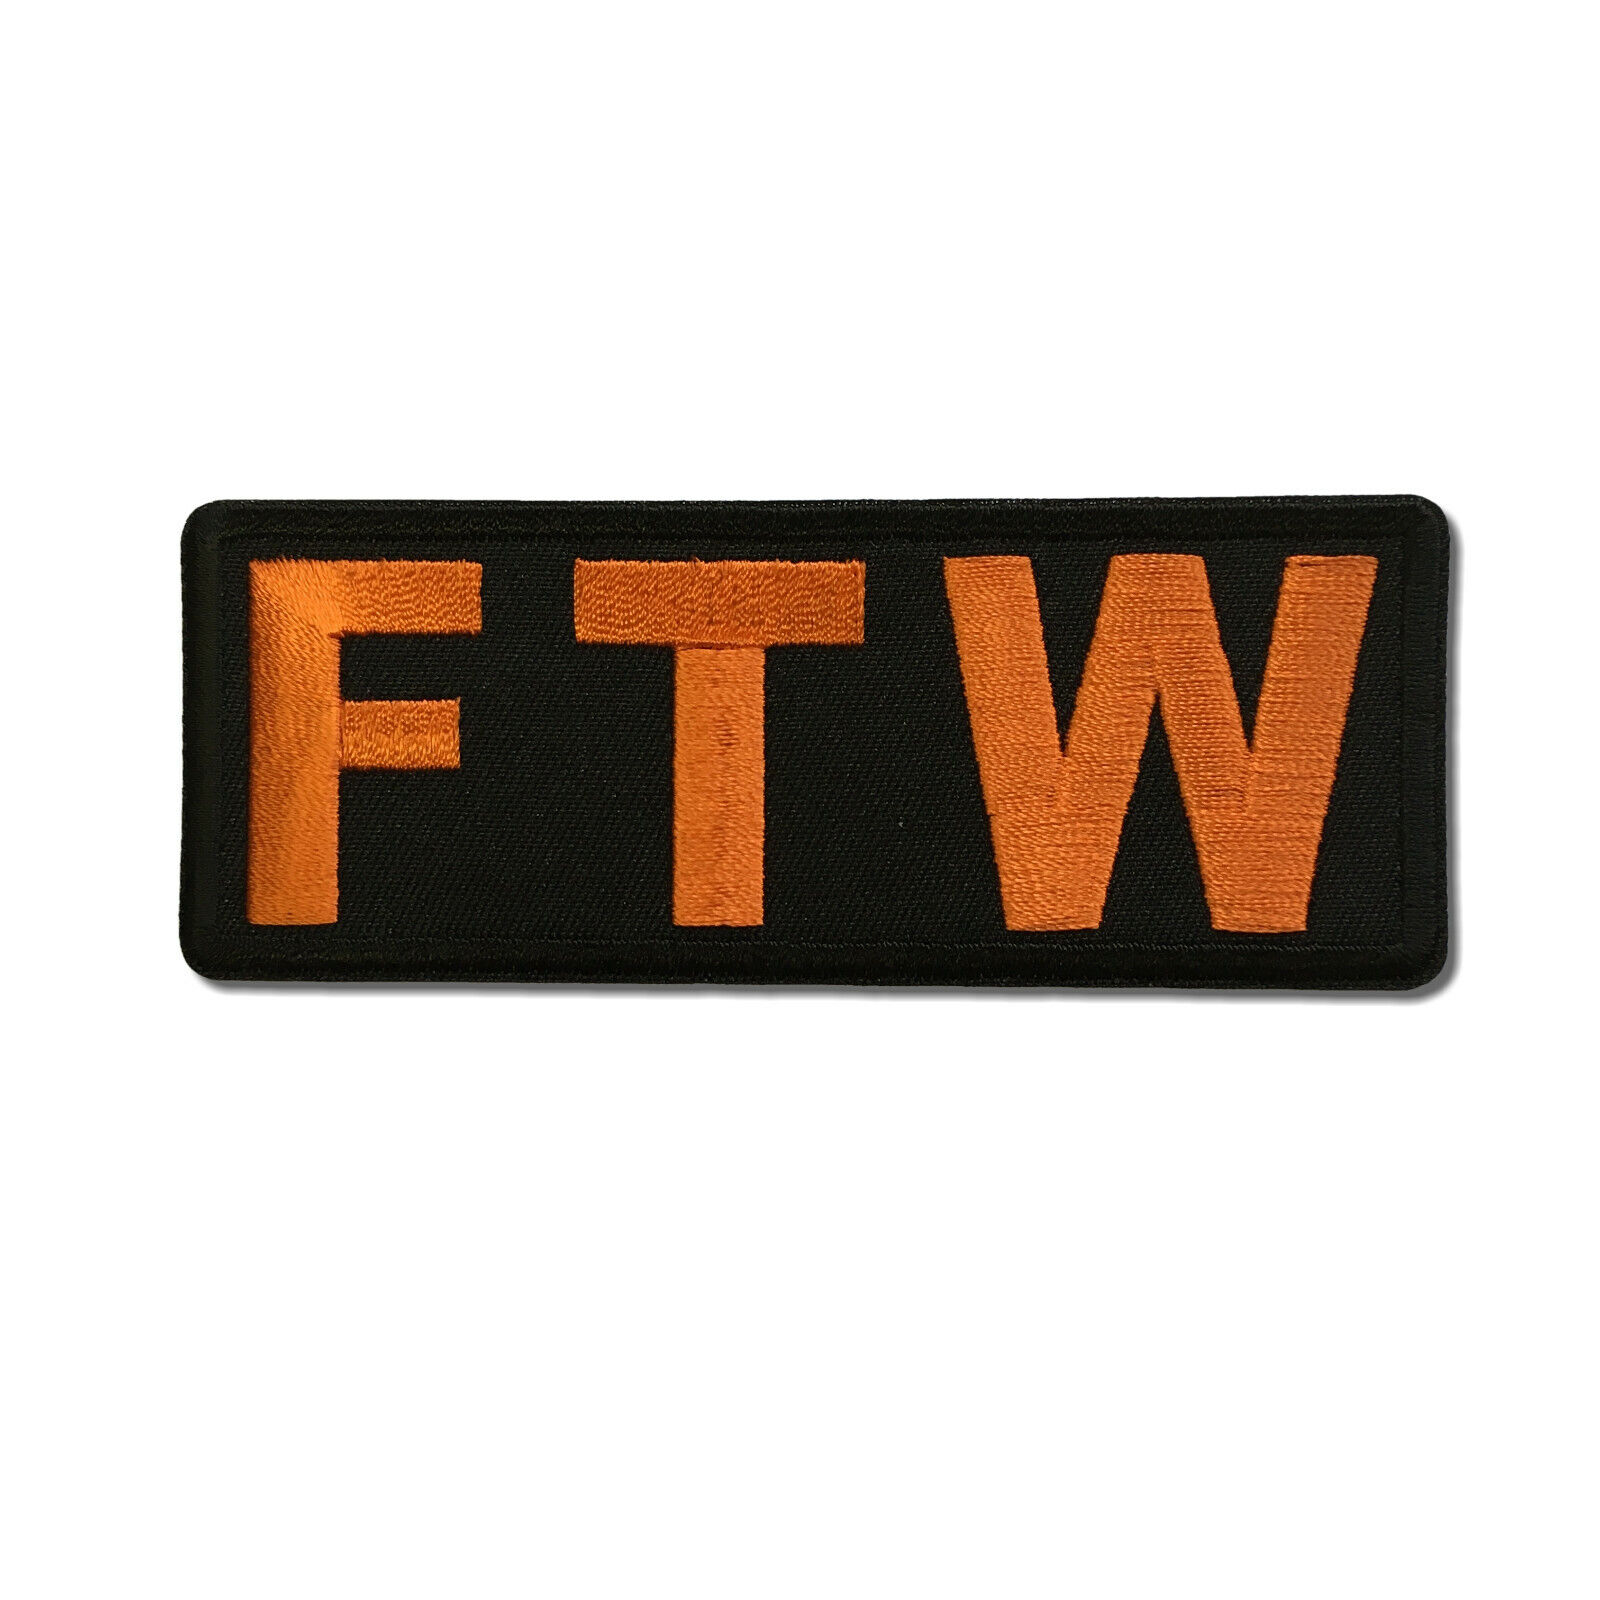 Embroidered FTW Forever Two Wheels Orange Sew or Iron on Patch Biker Patch